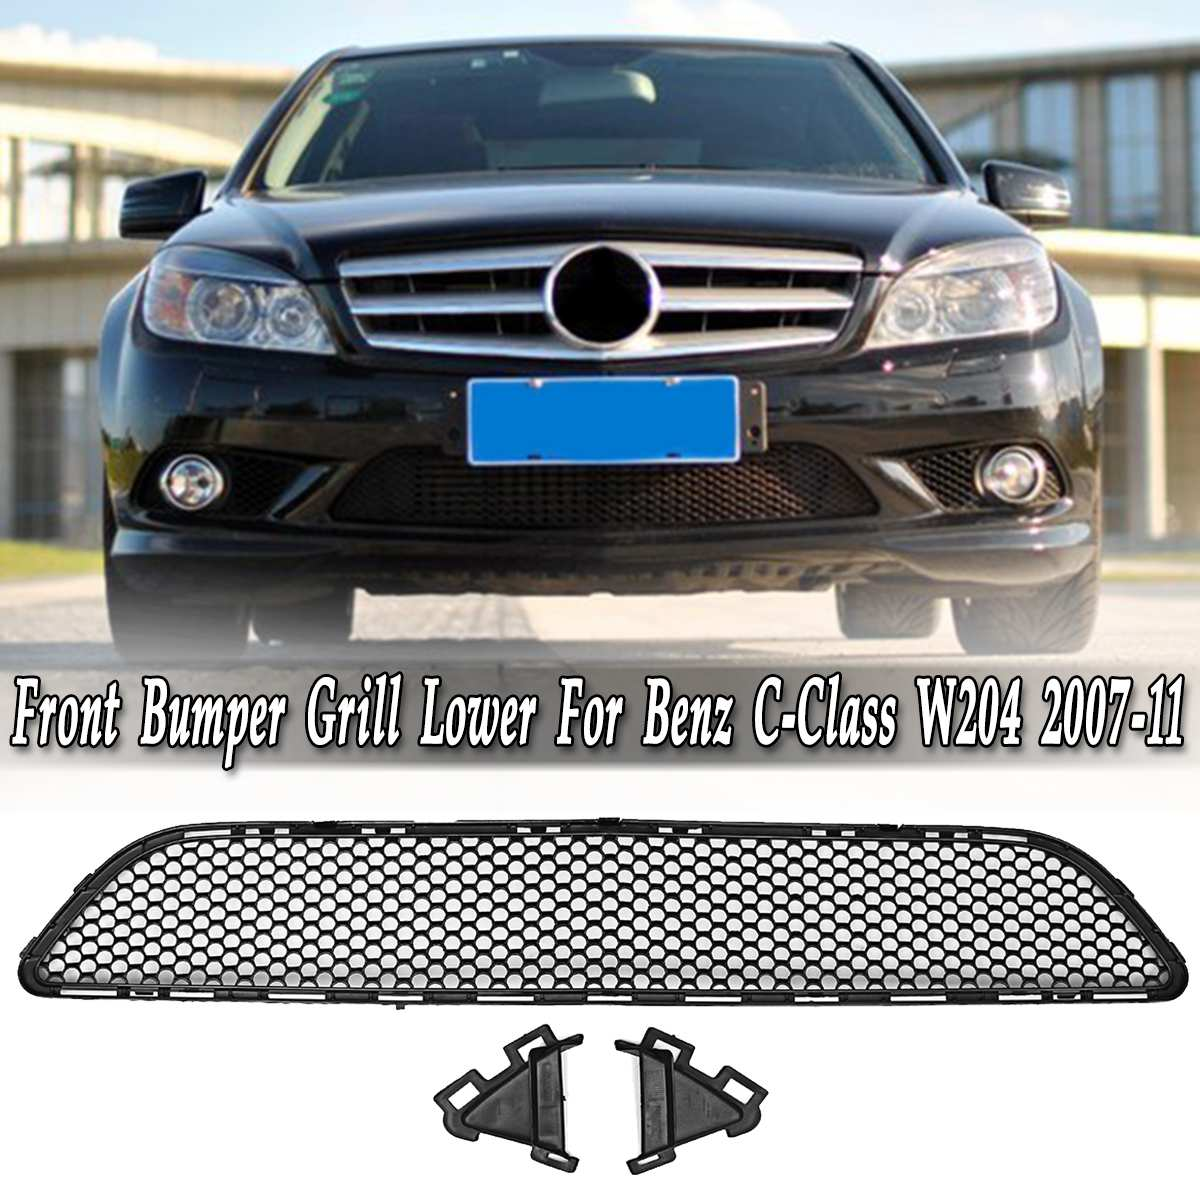 Glossy Black Front Bumper Grille Racing <font><b>Grills</b></font> Lower Fit For Mercedes-<font><b>Benz</b></font> C-Class For AMG <font><b>W204</b></font> 2007 2008 2009 2010 2011 image